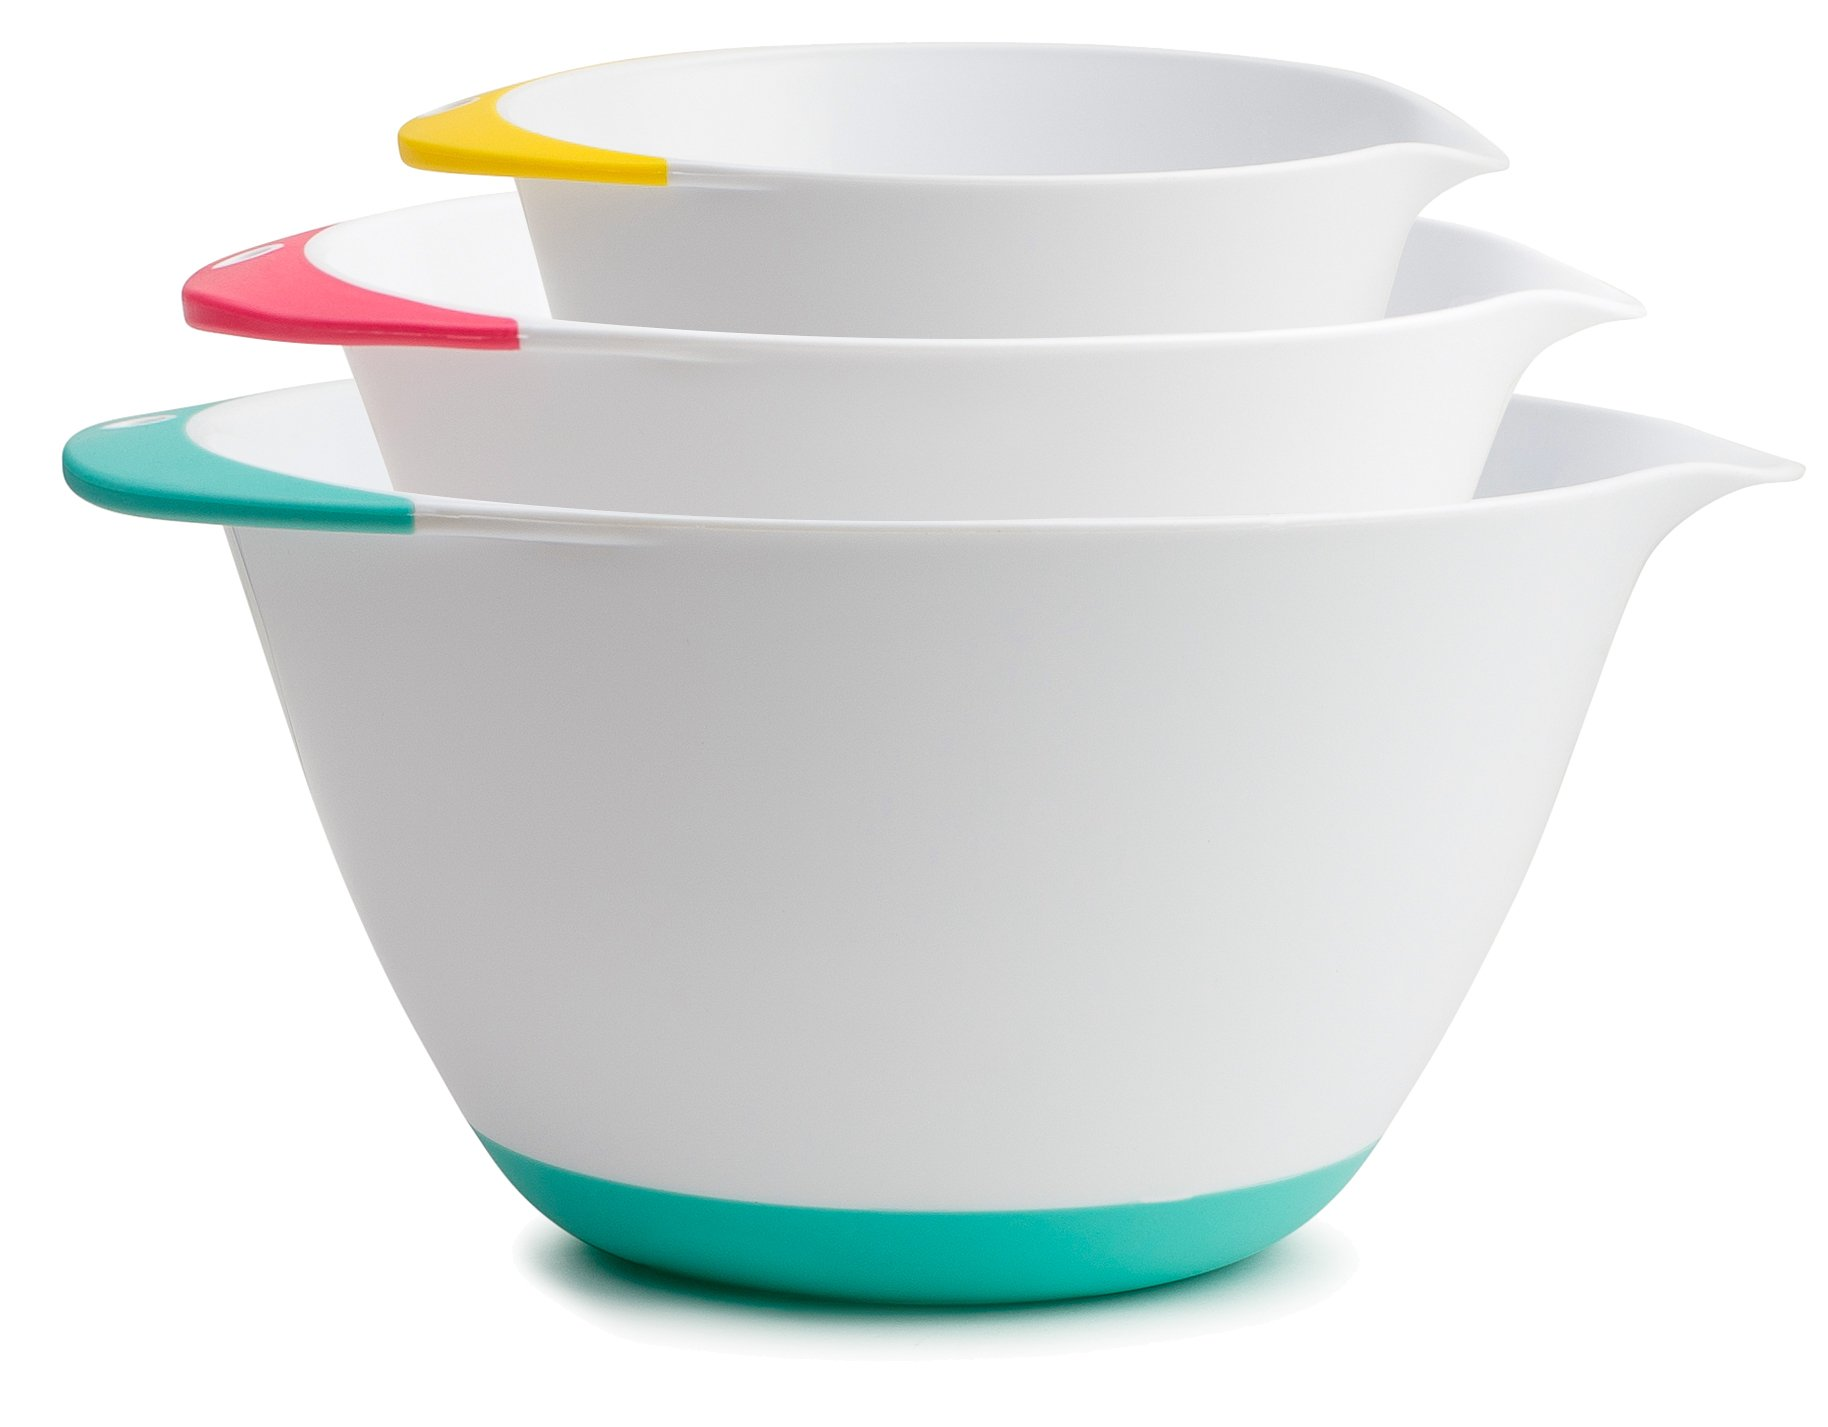 KUKPO Mixing Bowls – 3 piece set Includes 1.8 Qt, 3.6 Qt, 6.5 Qt, Easy Grip Handle With Non - Skid Bottom